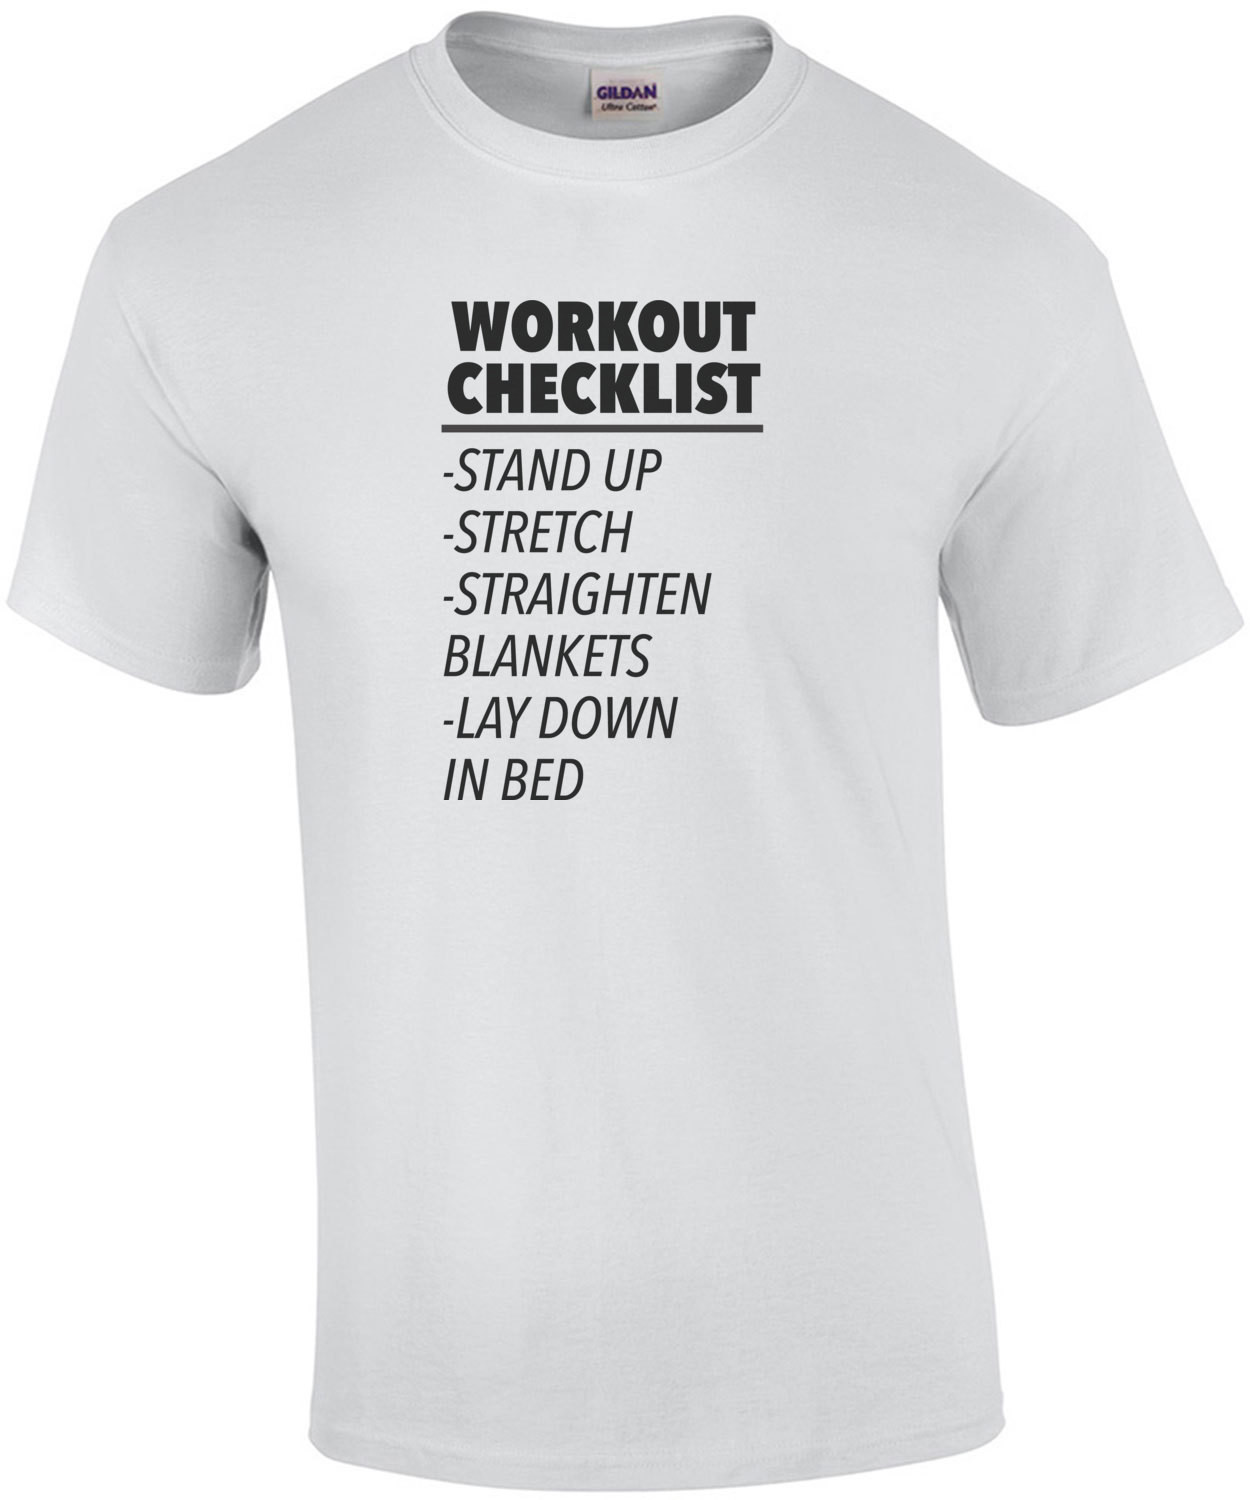 Workout Checklist - Stand up - Stretch - Straighten Blankets - Lay down in bed - Funny exercise t-shirt